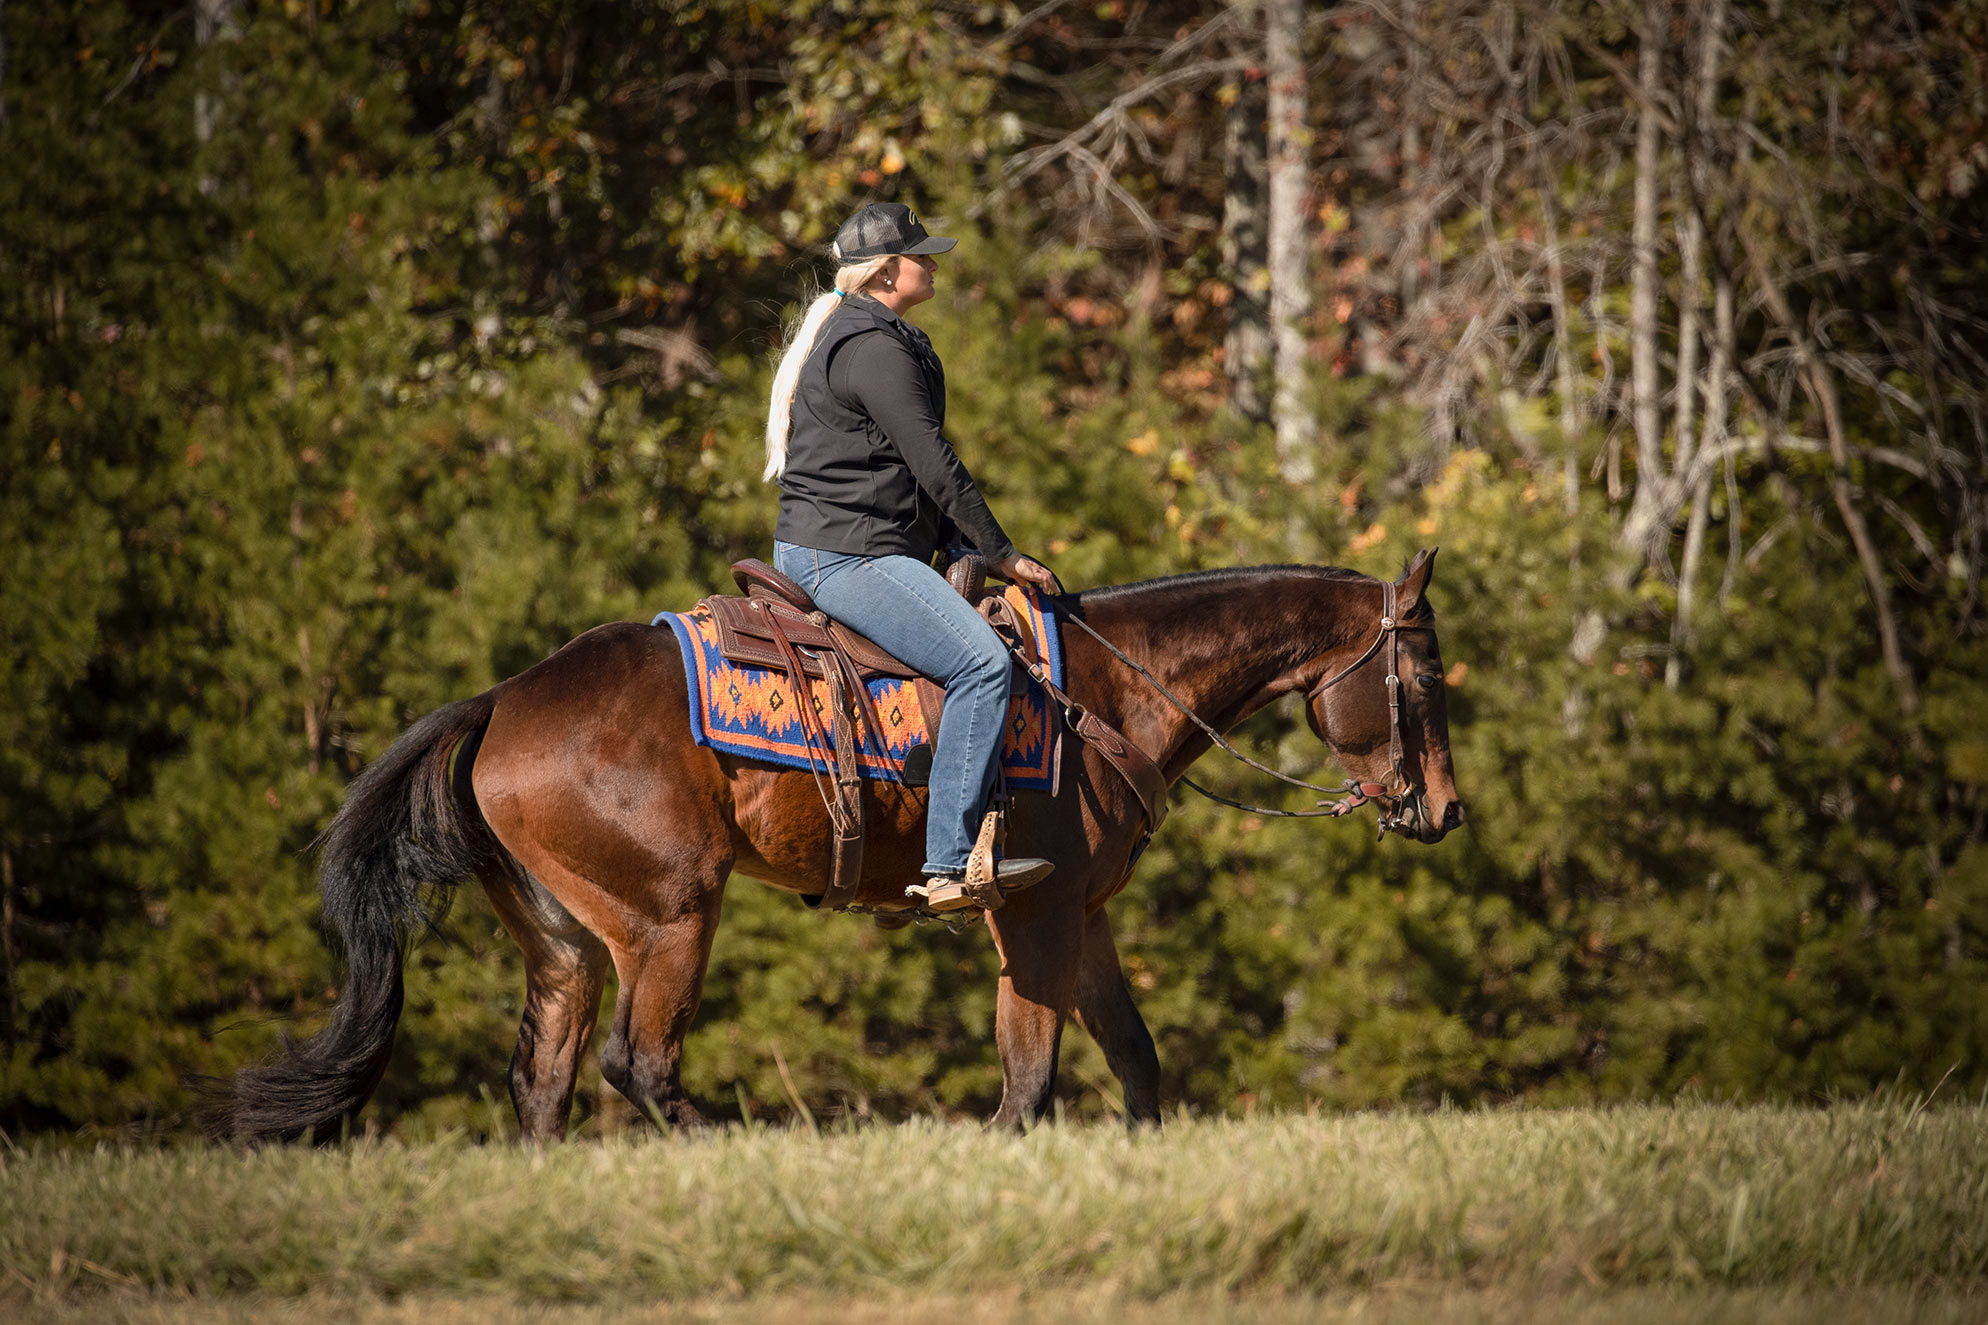 012-Ace-Luxury-Trail-Horse-For-Sale